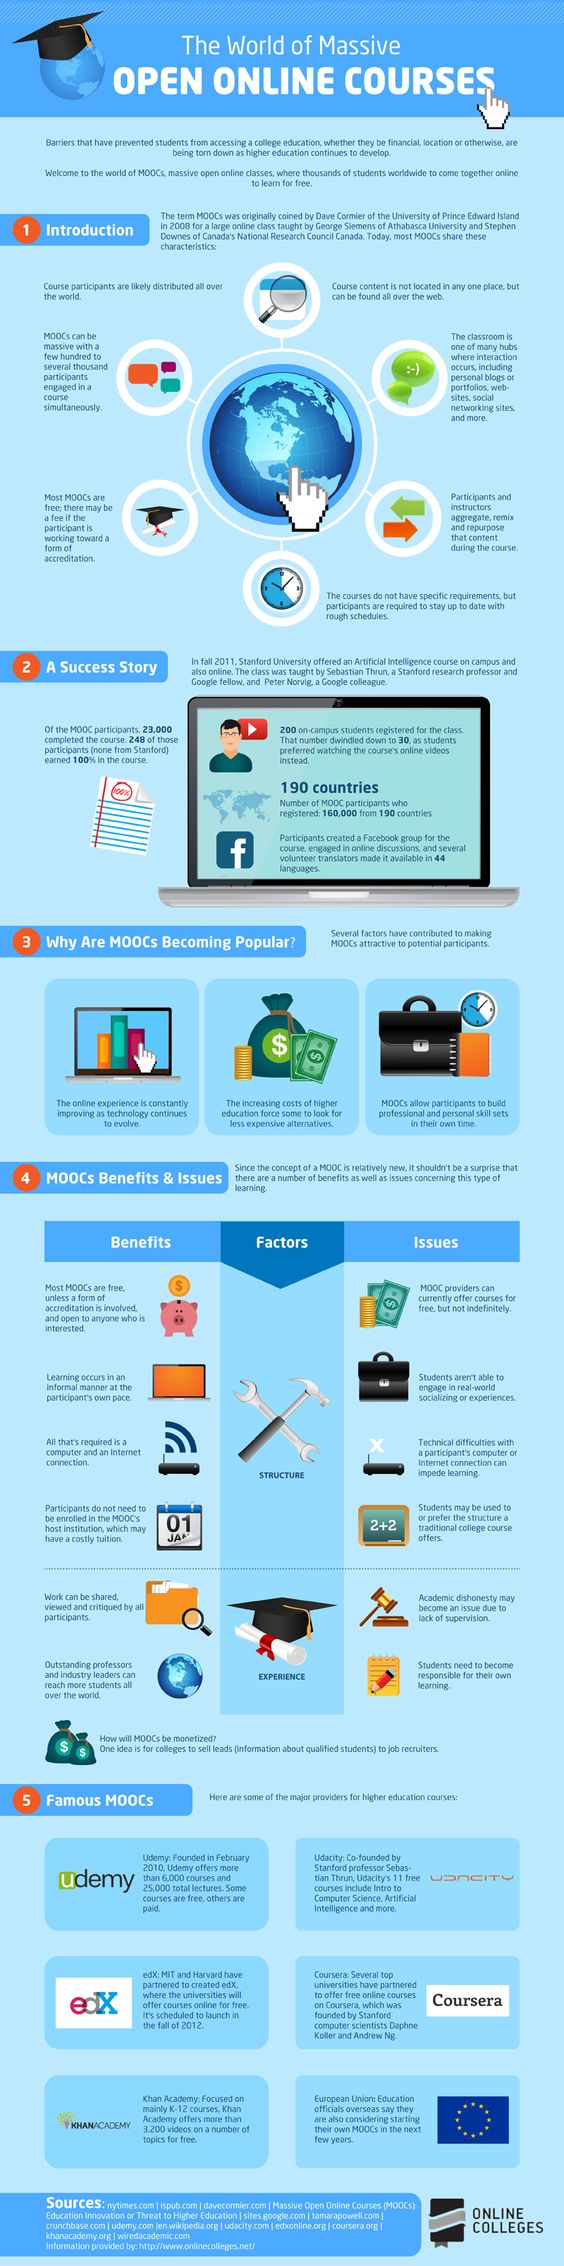 What Is The World of Massive Open Online Courses? #highered #infographic